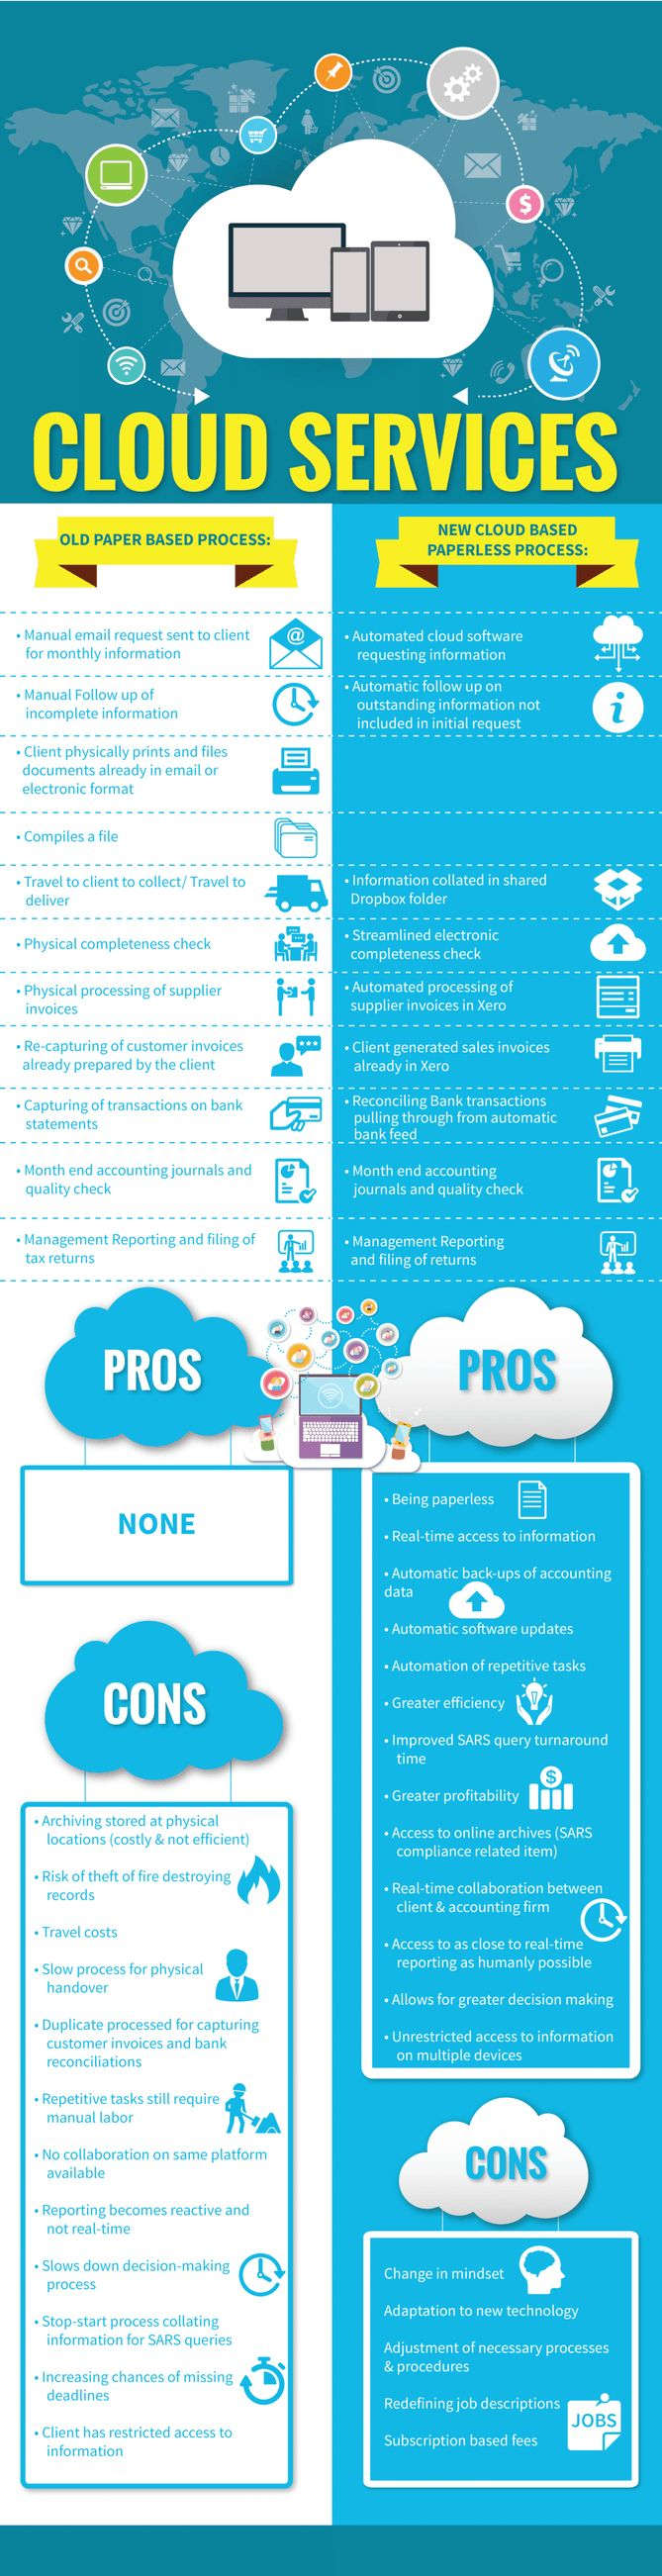 Pros and cons of cloud based services  Infographic